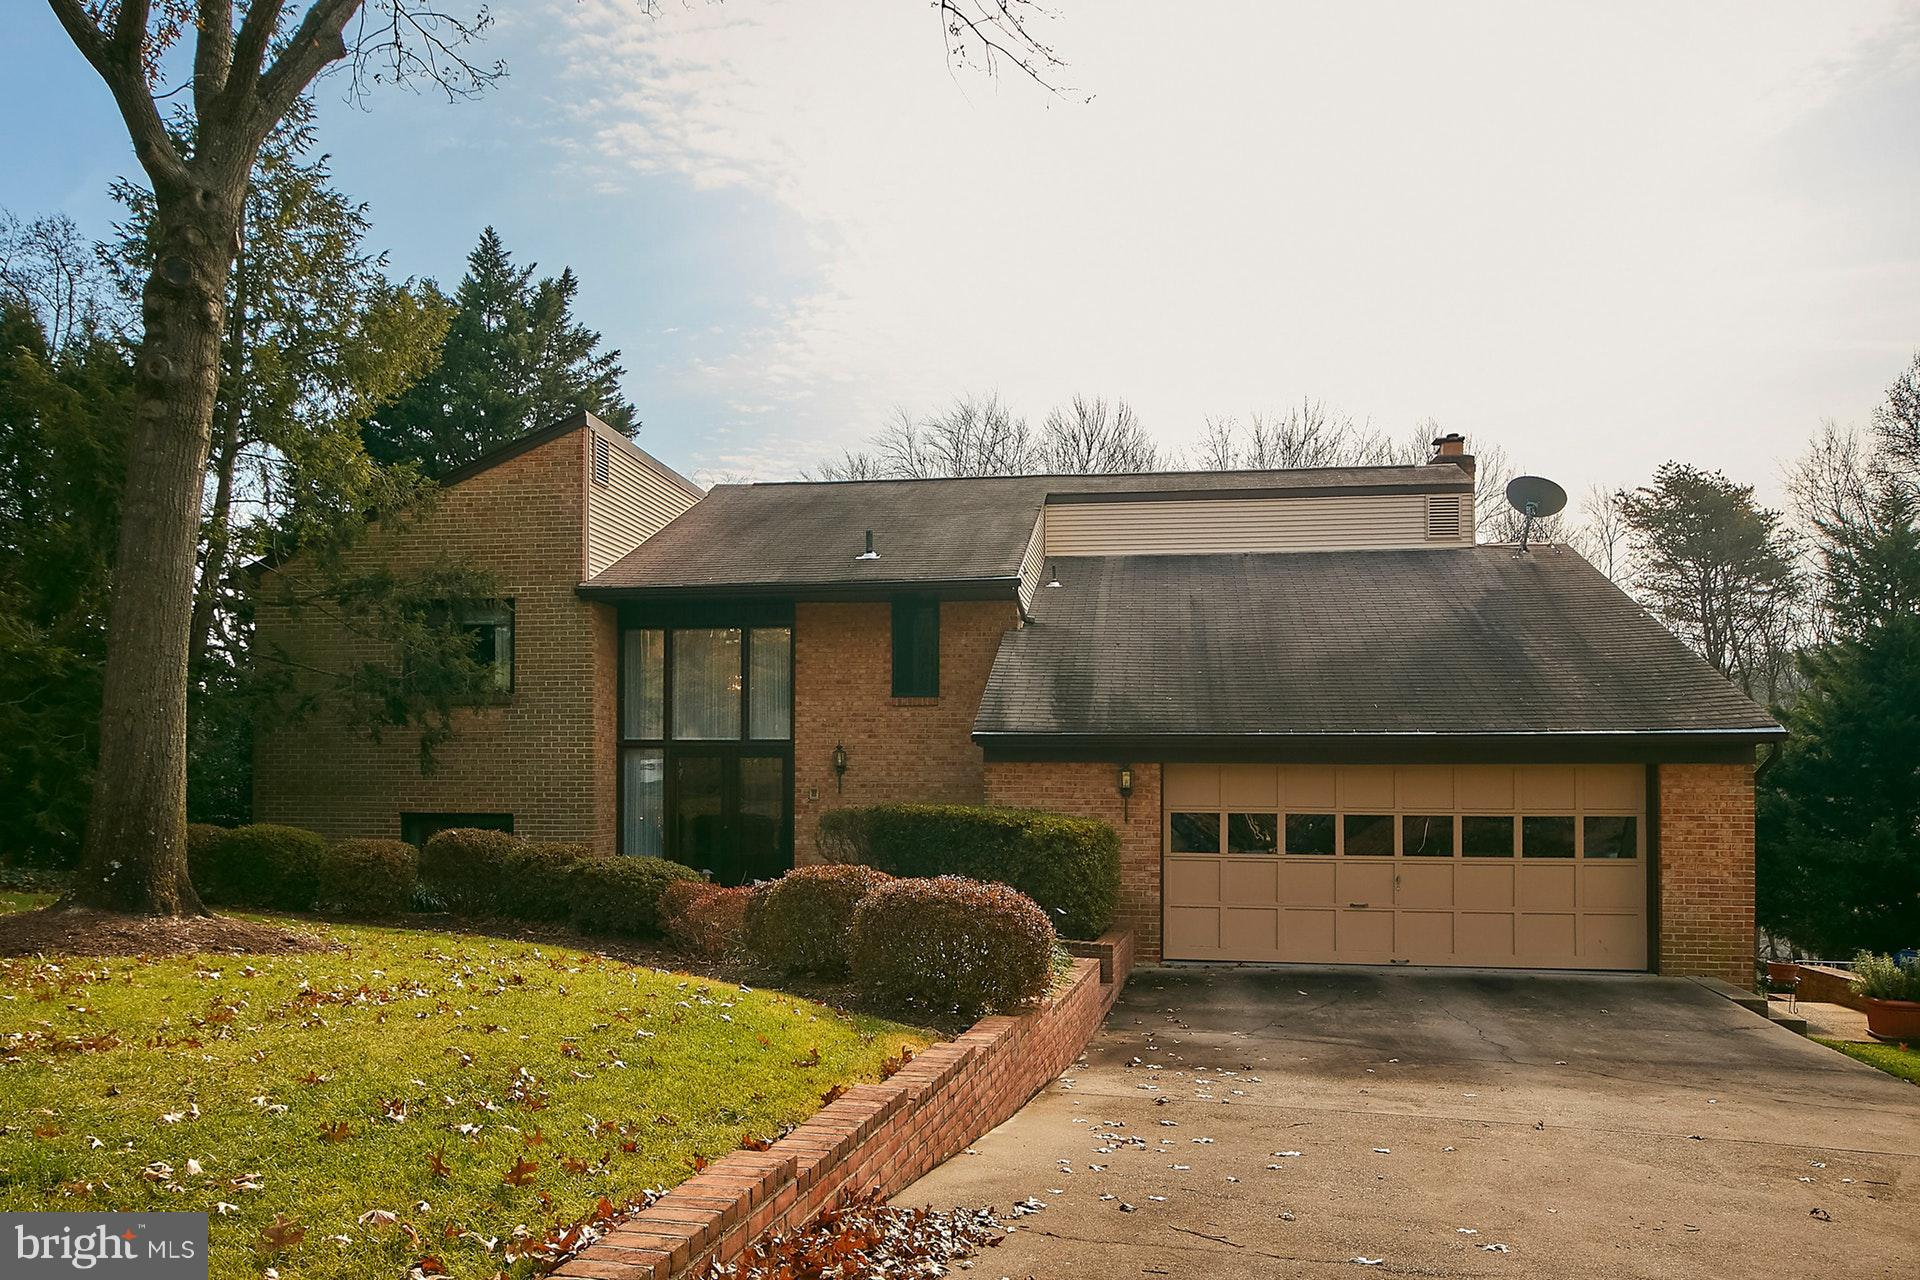 Wonderfully large and bright contemporary on a beautiful .5 acre lot in the desired neighborhood of Wilton Woods. The renovated kitchen includes stainless steel appliances, granite counters, tile backsplash, and double sink. It also has a built-in workspace and eat-in breakfast area. Just off the kitchen is a large, comfortable family room with a gas fireplace, wet bar, and beamed ceiling. Both the kitchen and family room open to a large trek deck, great for entertaining. The deck includes a hard piped gas grill and an electronic awning. The first floor includes a large separate dining room and spacious living room. Just off the oversized 2 car garage you find a bright, spacious laundry room with built-in extra storage and new washer and dryer. The upper level includes a master bedroom suite with hardwood floors and 2 closets, one an ample walk-in closet. The master bath has dual vanities, separate shower, and a large soaking tub. The remaining upper level consists of 3 bedrooms, one with a walk-in closet, and hall bath with double vanities. The lower level will knock your socks off.  Consisting of a large bright rec room with 12' ceilings. It includes a gas fireplace, large wet bar with beautiful custom built-ins and beverage fridge. The rec room opens to a large screened porch with ceiling fans so you can enjoy summer nights without bugs. Also on the lower level is an office/bedroom with built-ins and coffered ceiling. There is also an additional bonus room that is currently used as a bedroom. Finally, the spacious utility room opens to a very large storage/work room that exits to the side yard. The back yard is flat and includes a serene view of trees. The HVAC system is a 2 zone system, main and lower have a gas forced air furnace and a/c(2014), the upper level is a heat pump. Water heater replaced in 2018. All of this and minutes to Crystal City, National Landing, BRAC, the Pentagon, and Fort Belvoir!